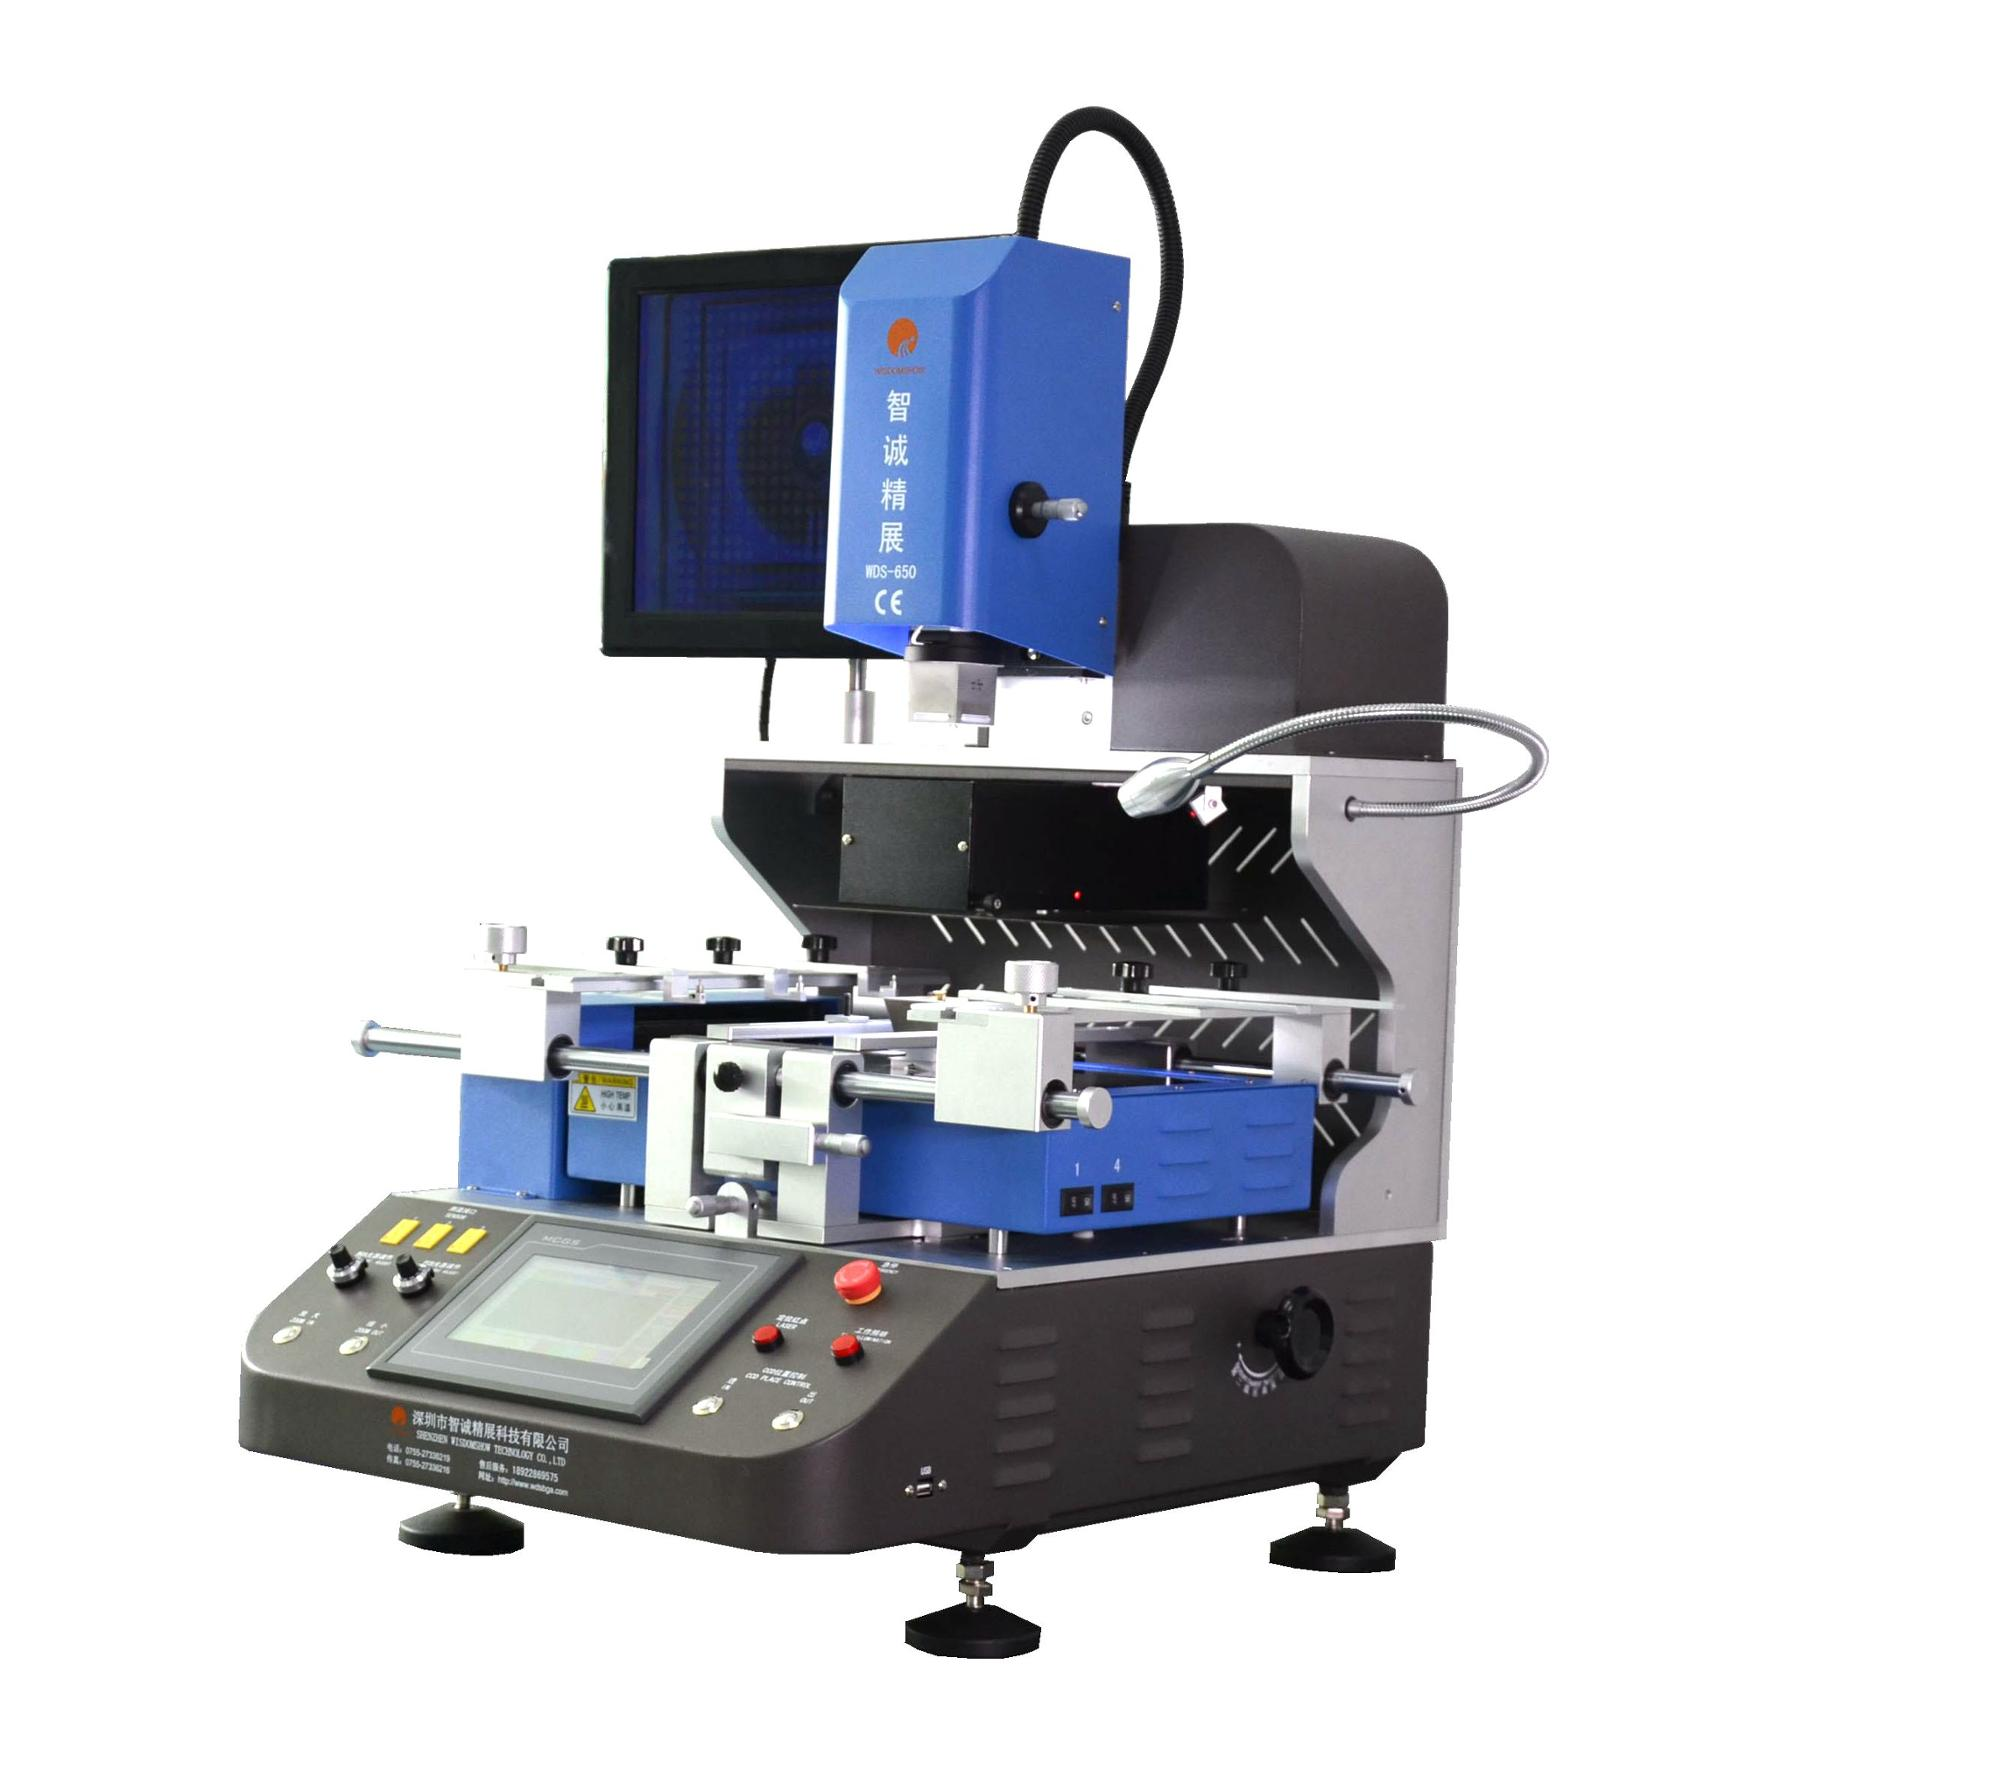 LED bga rework station WDS650 Wisdomshow new arrive motherboard repair machine for laptop/mobile